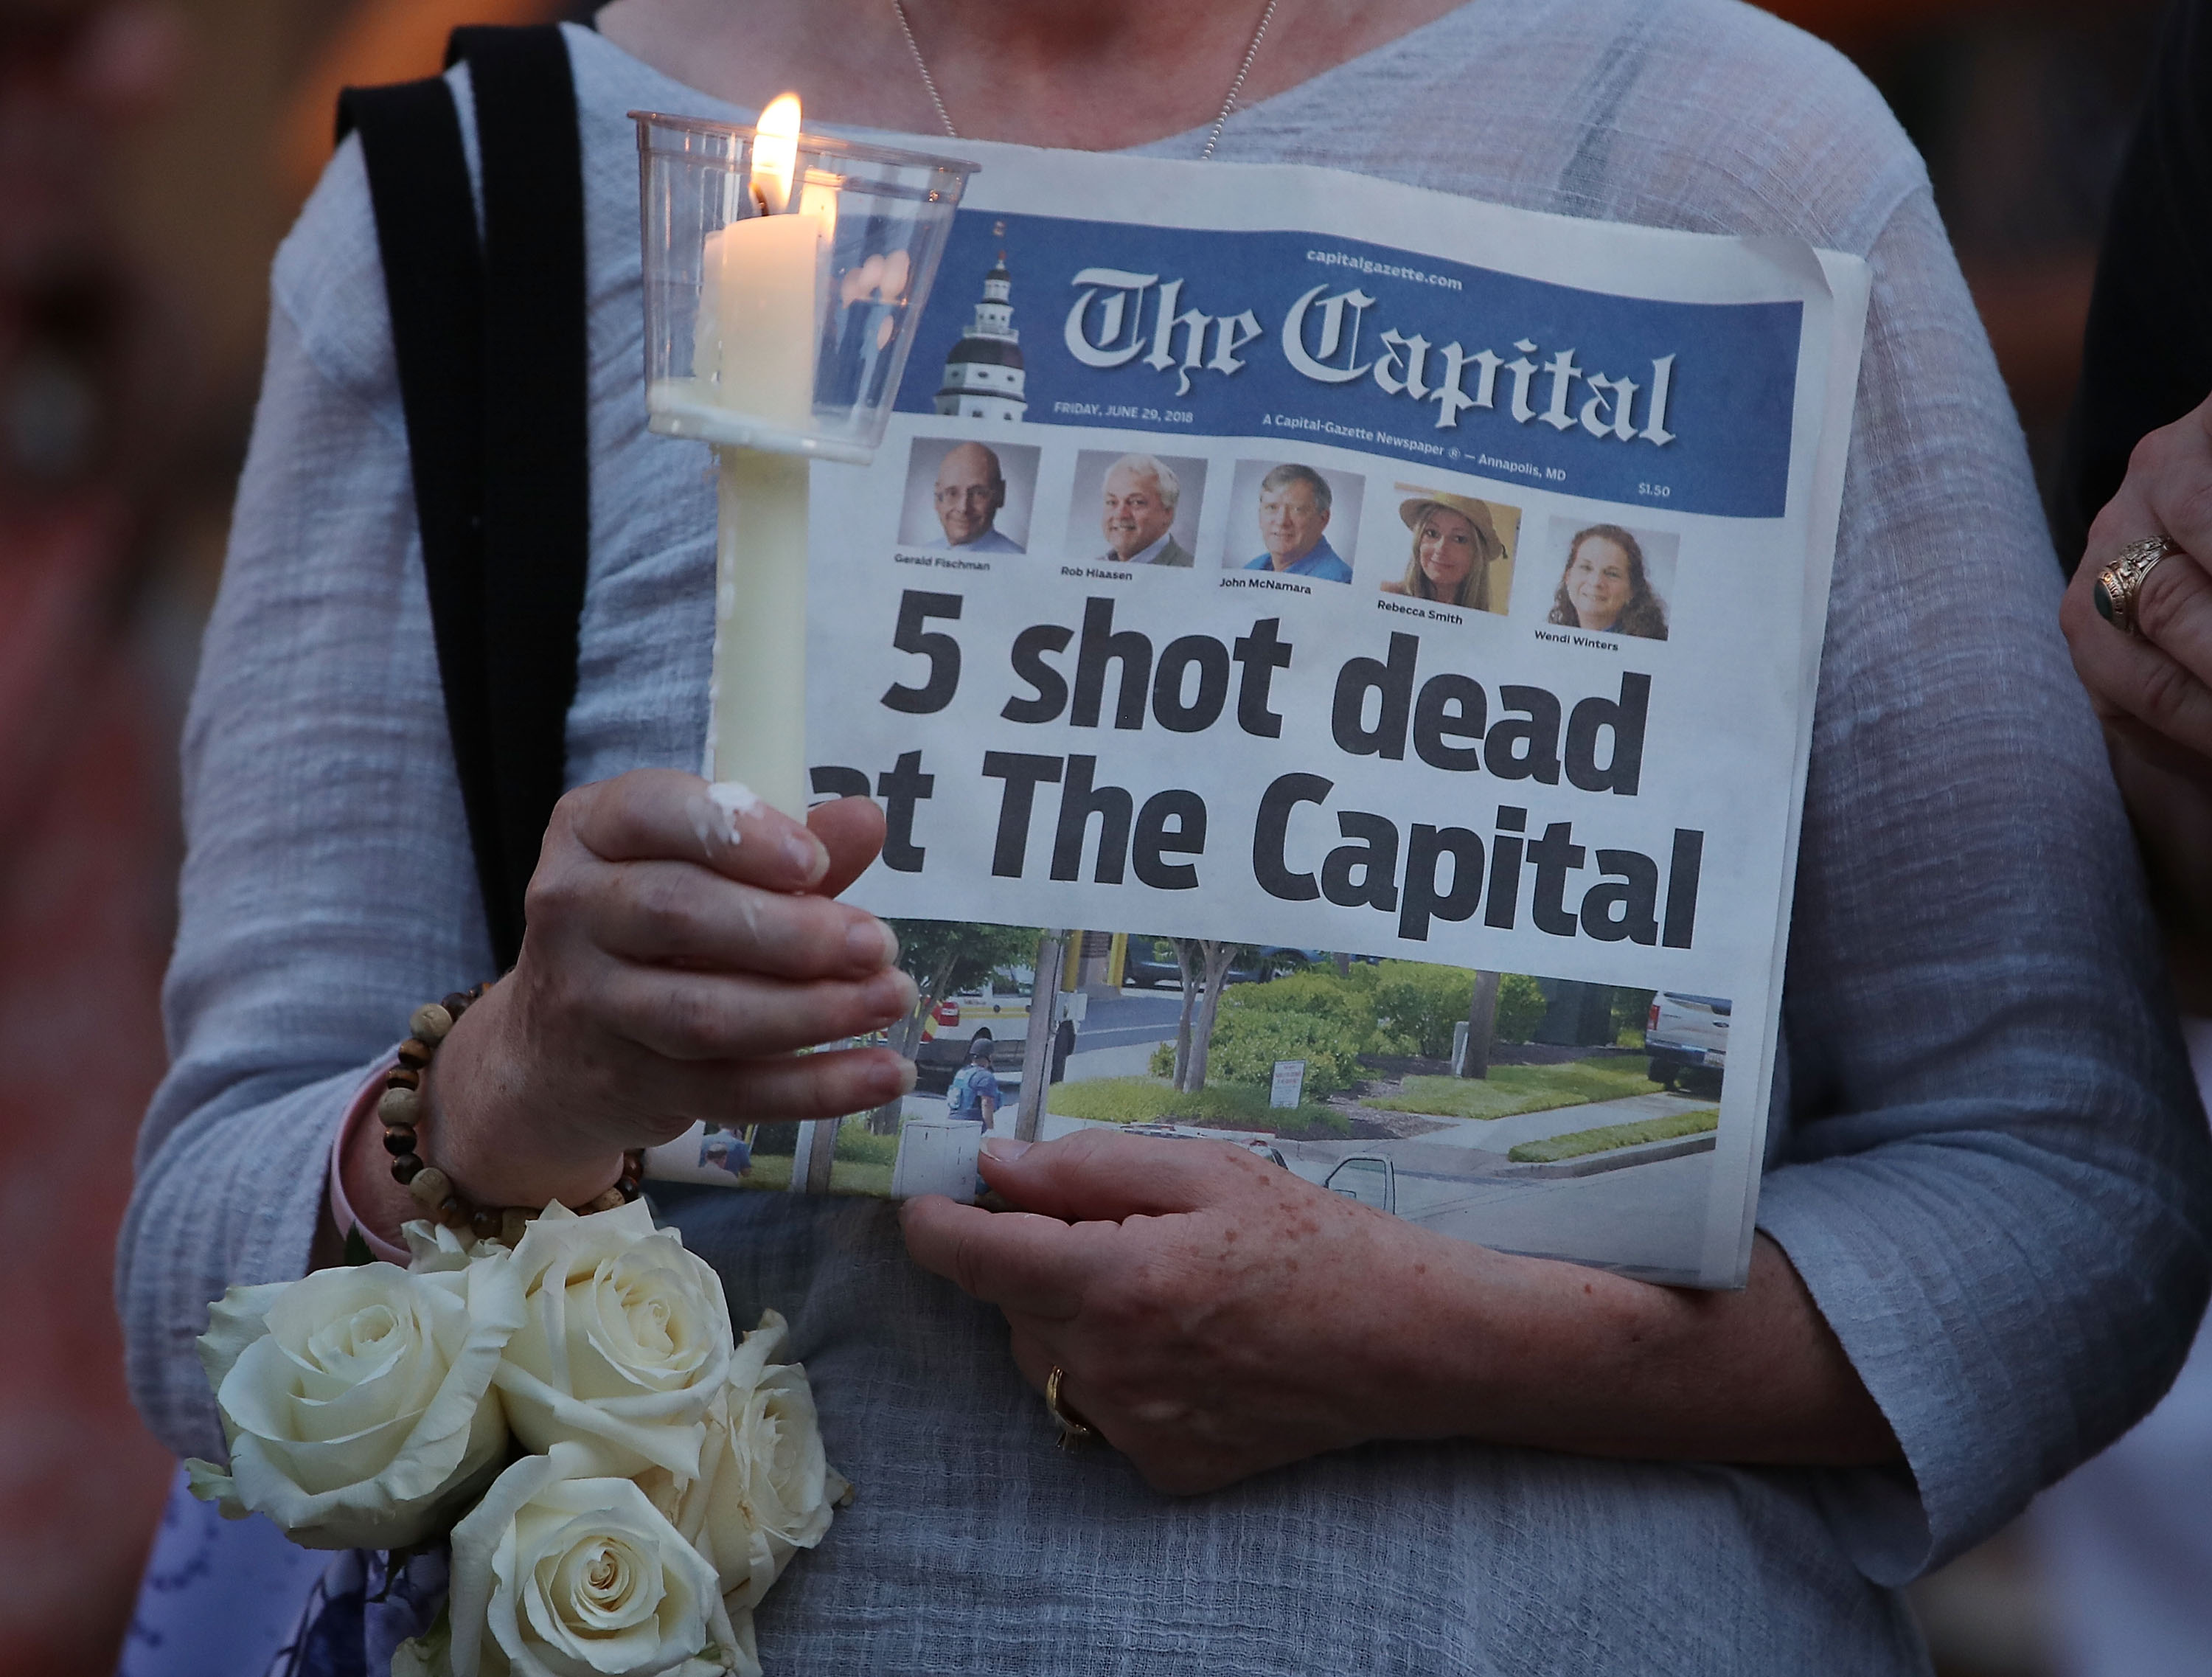 A women holds today's edition of the Capital Gazette newspaper during a candlelight vigil to honor the 5 people who were shot and killed yesterday, on June 29, 2018 in Annapolis, Maryland.